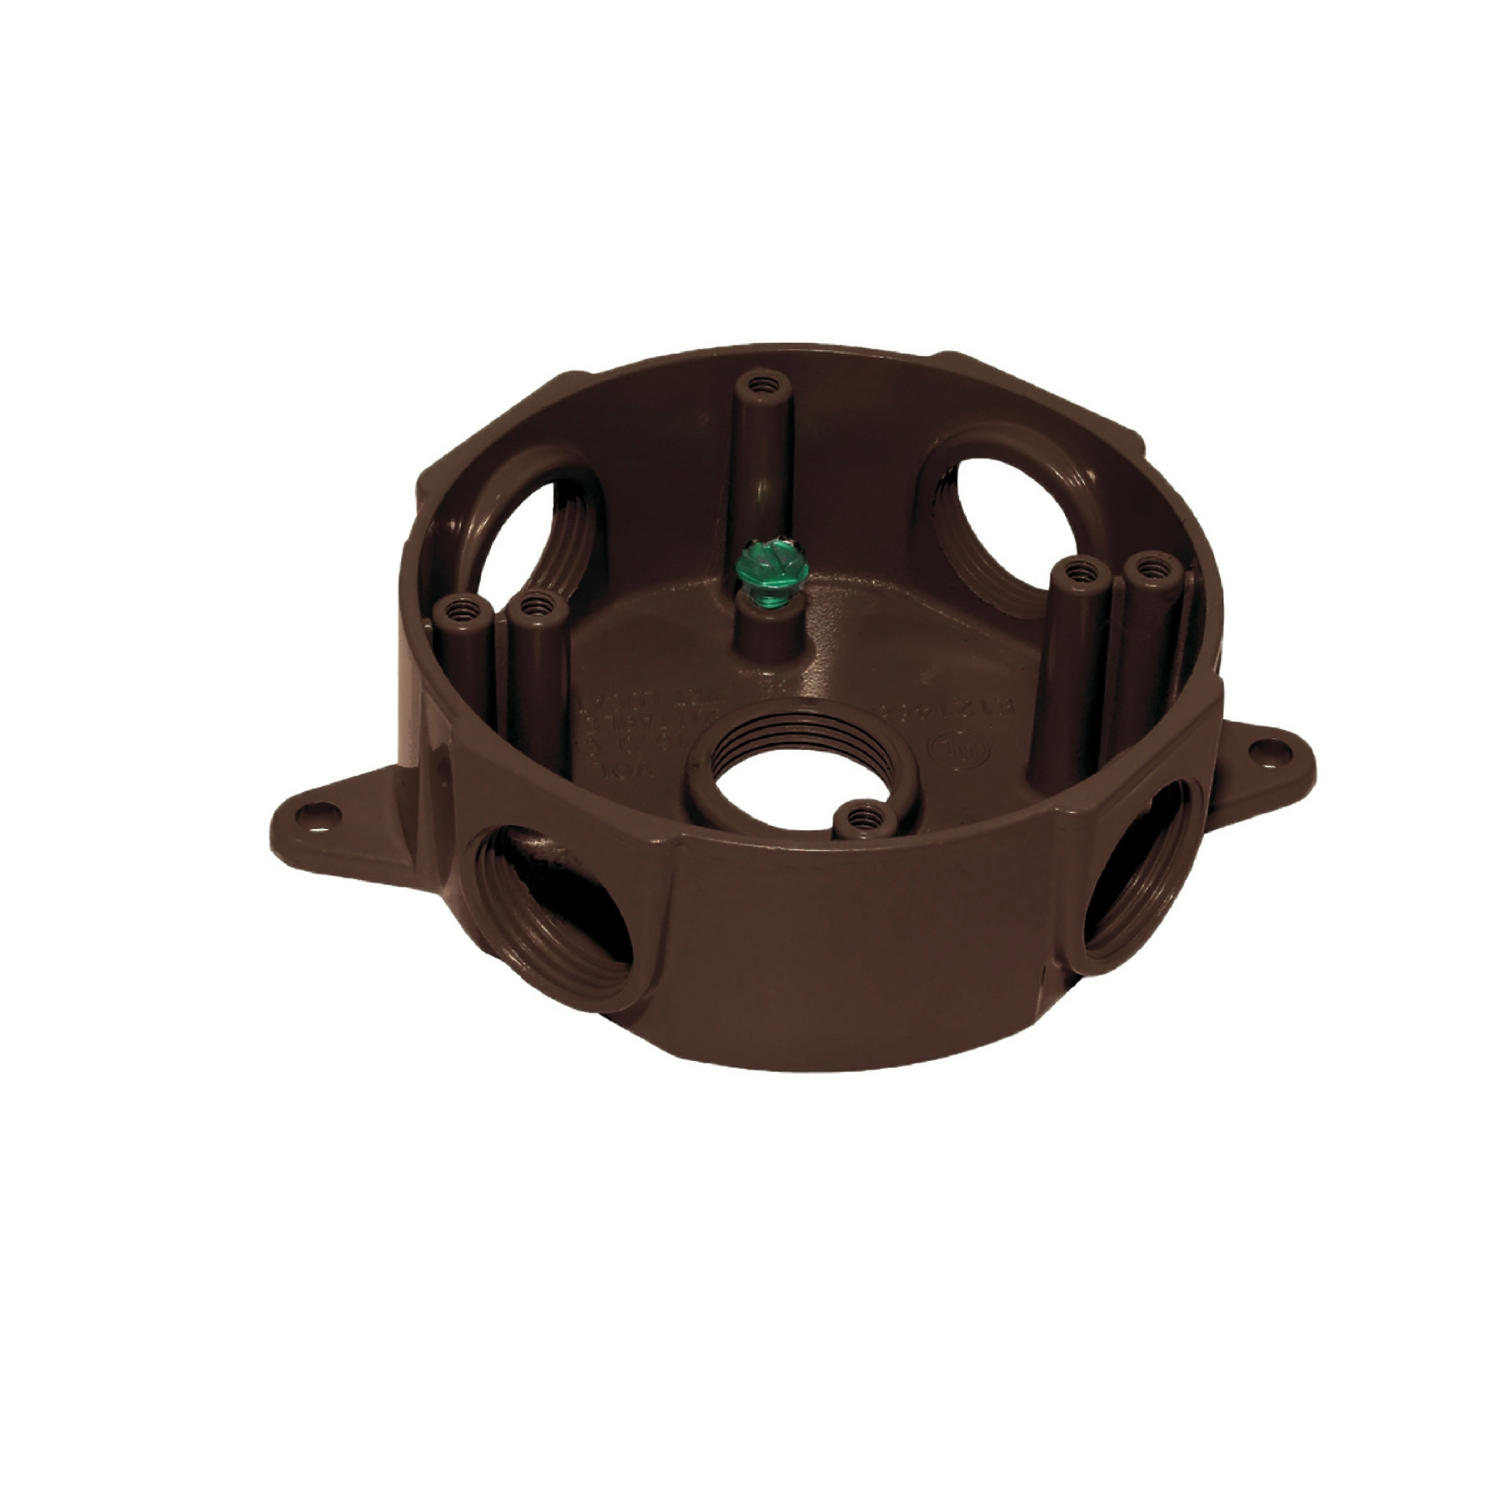 Sigma  2-5/16 in. Round  Aluminum  Outlet Box  Bronze  5 Gang